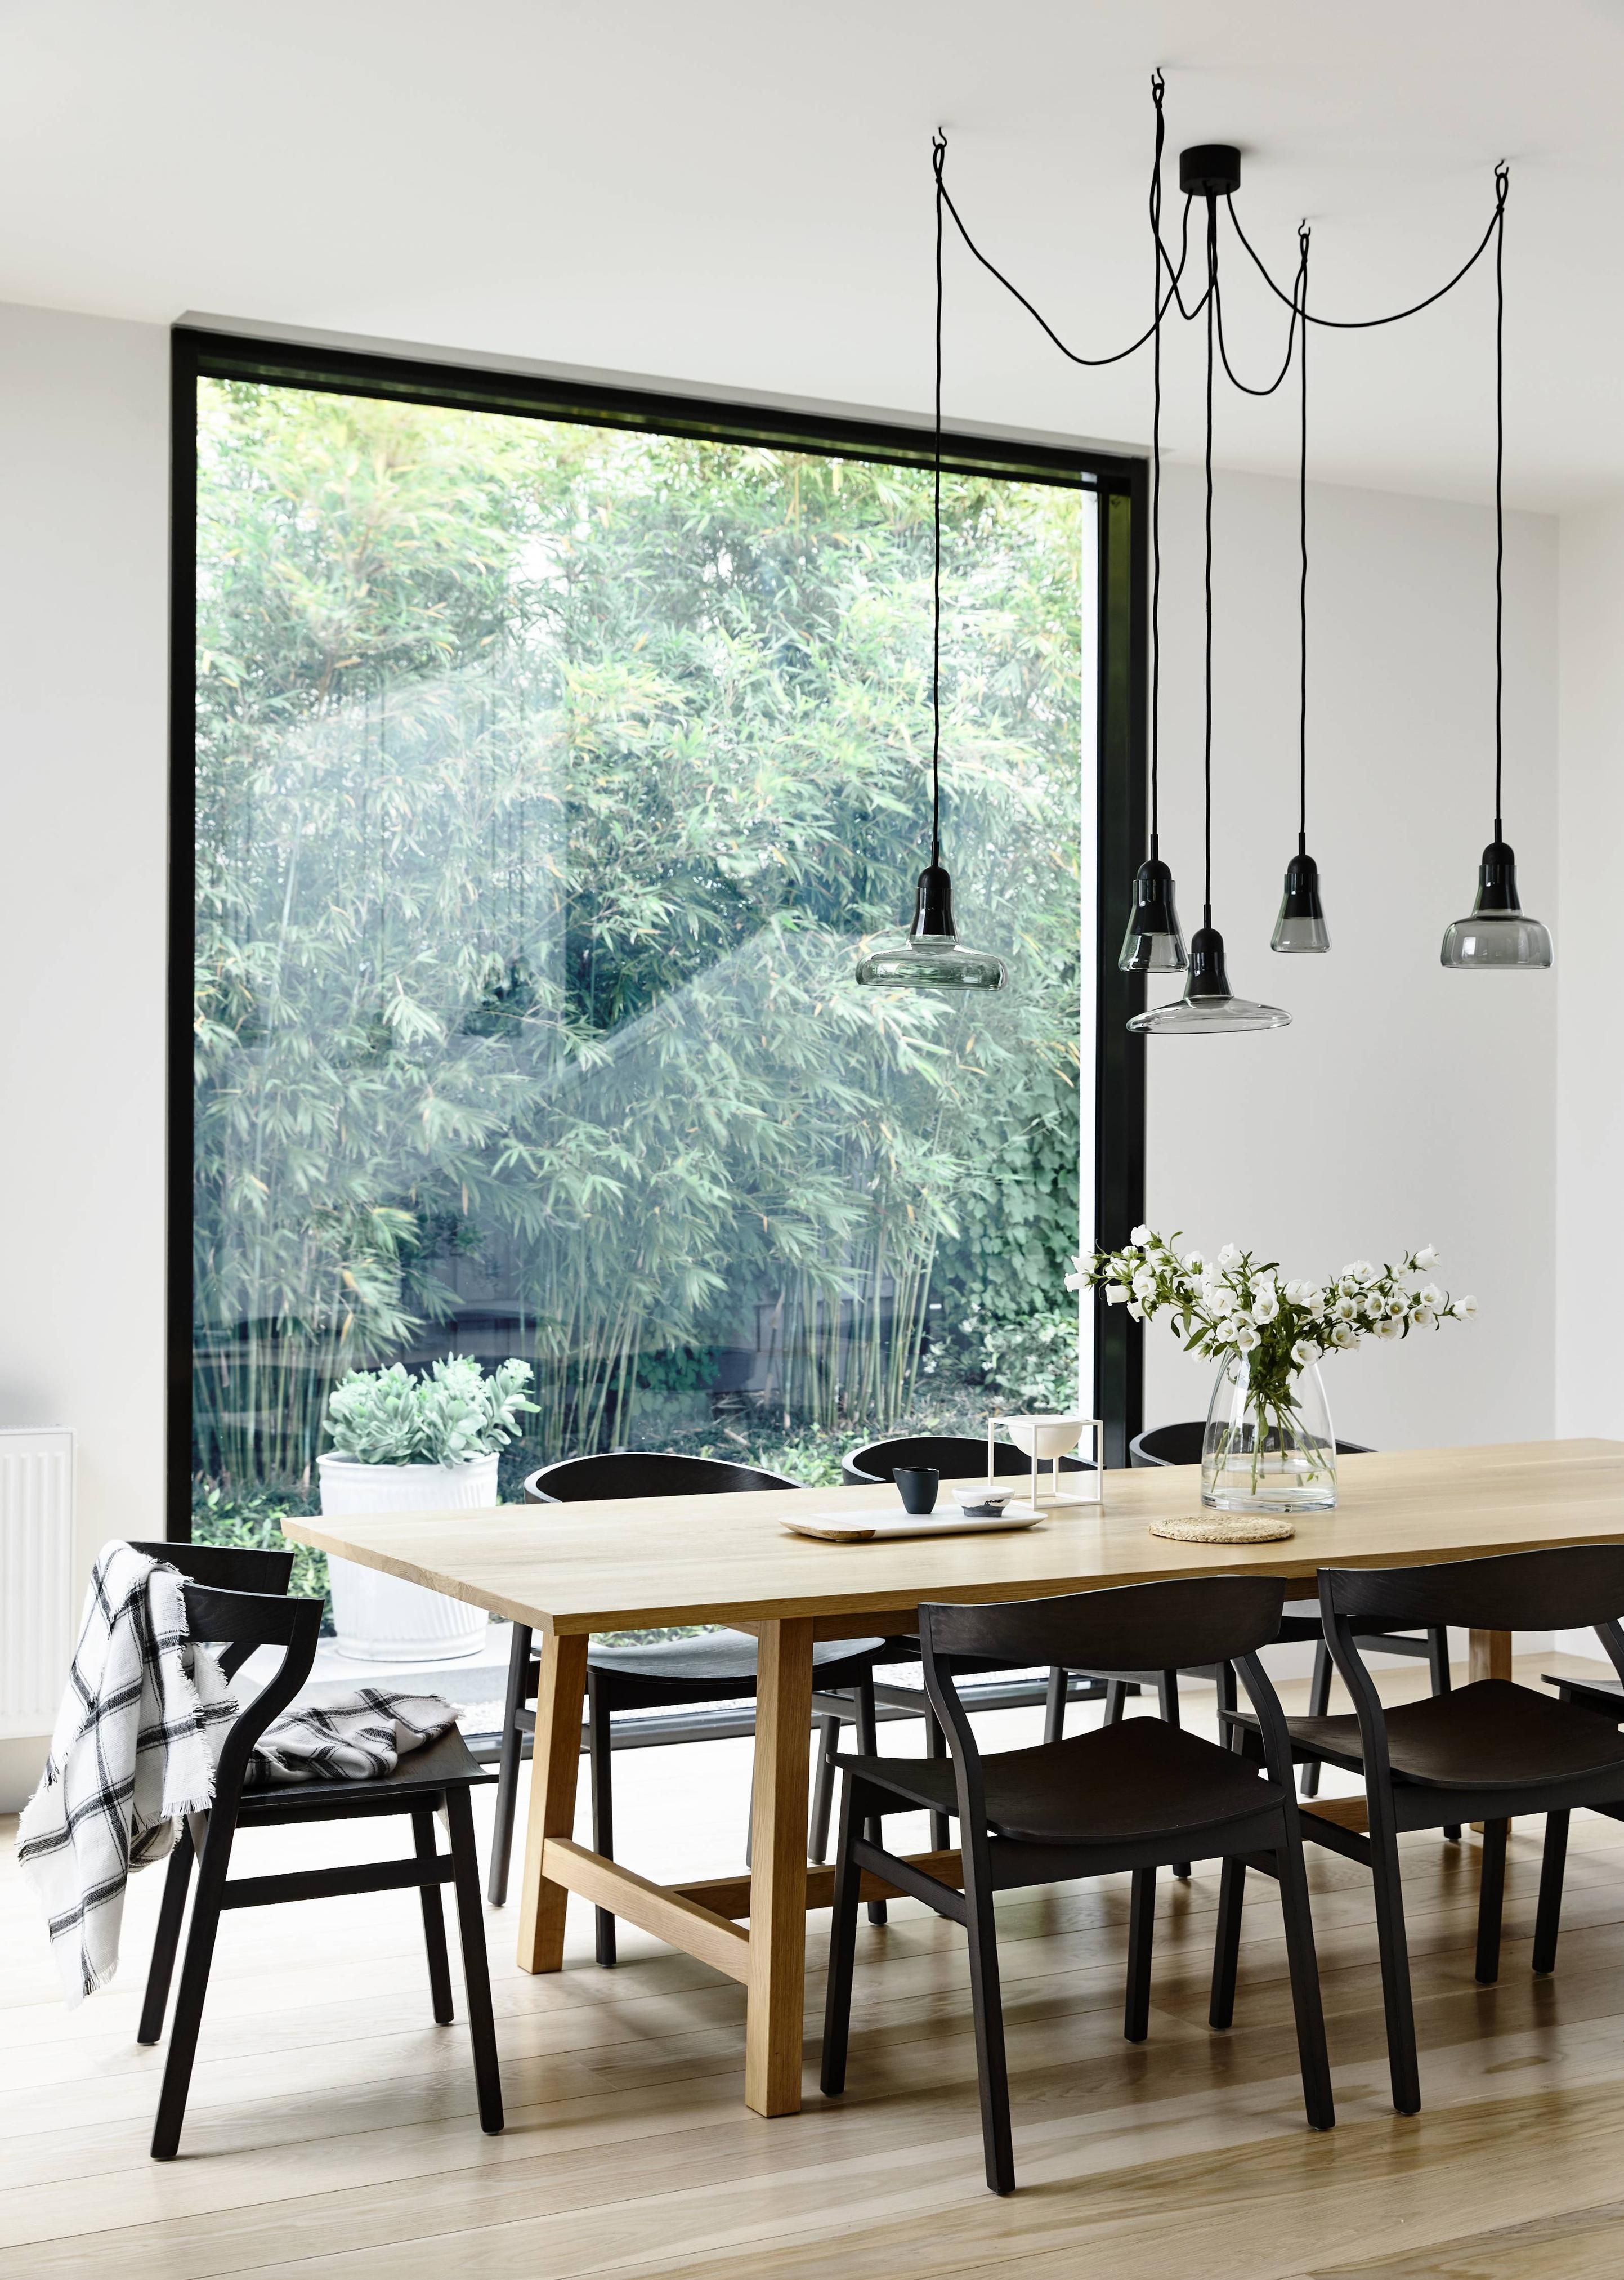 √ 34 Stylish Dining Room Decor Ideas To Impress Your Guests ...